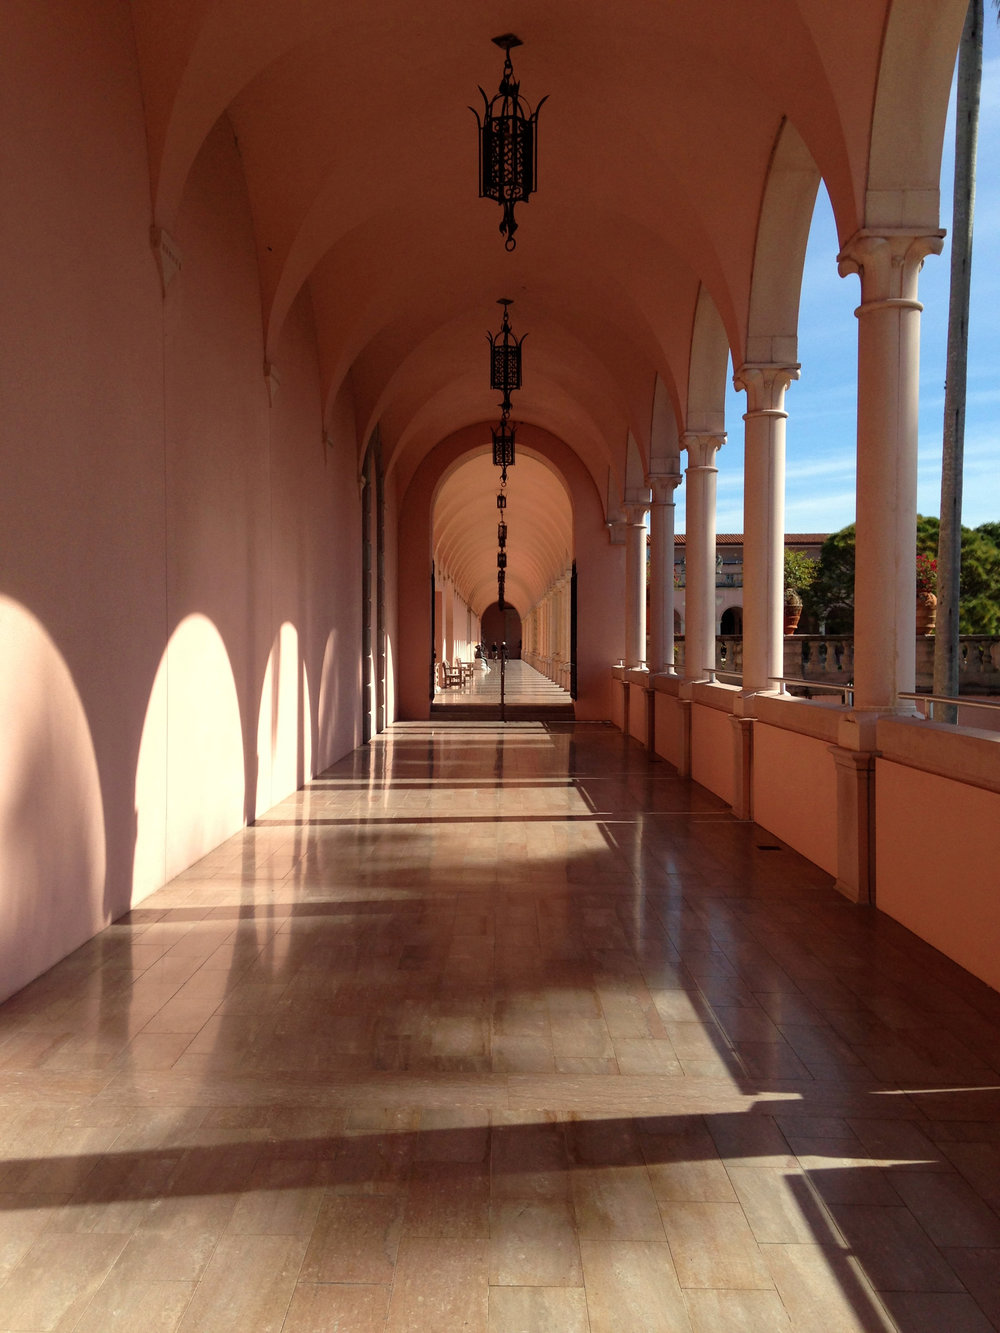 The Loggia Ringling Art Museum